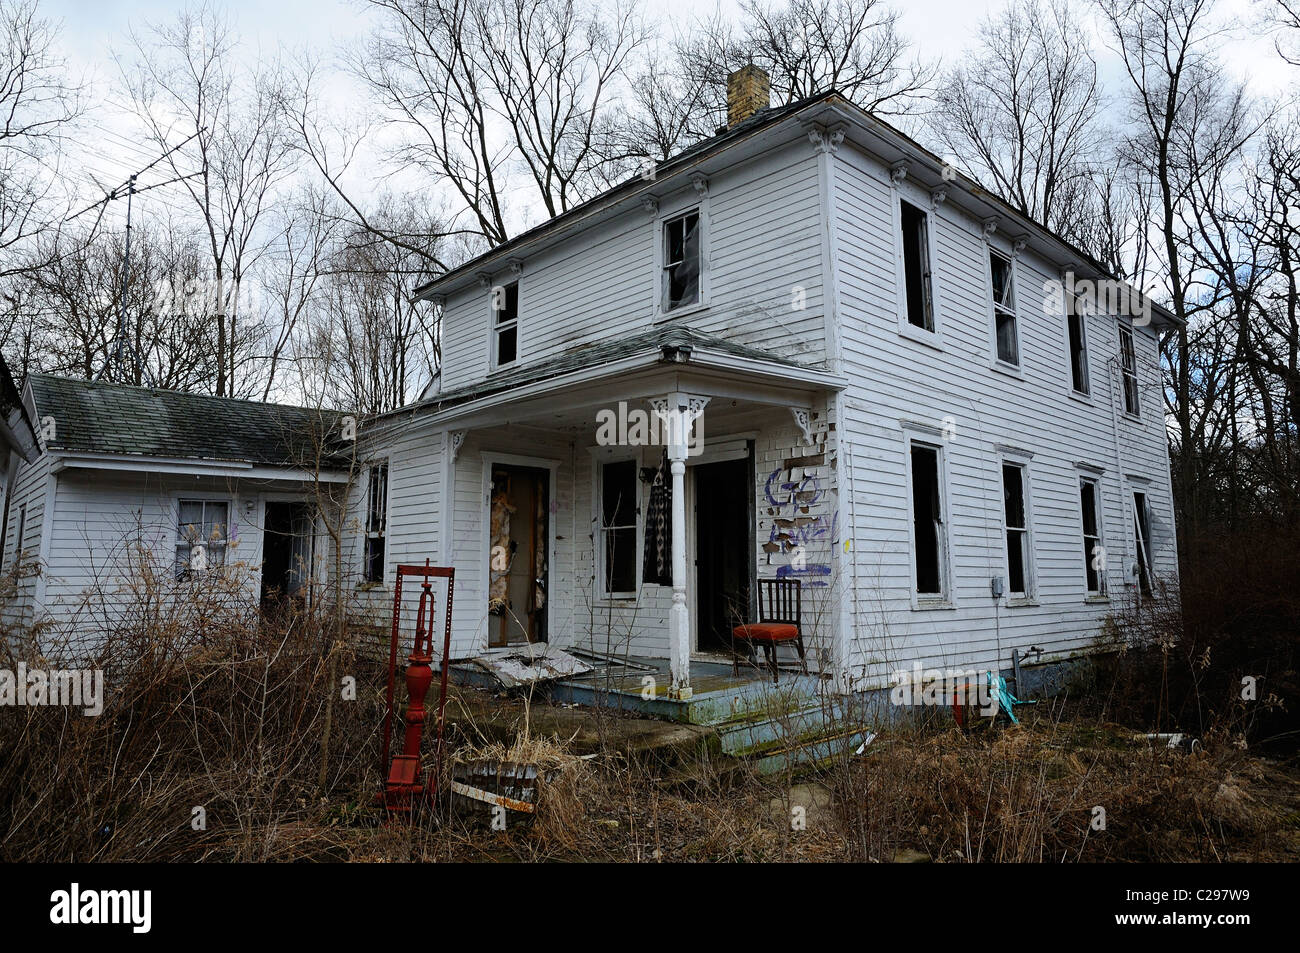 Deserted broken down Illinois farm house with all the windows broken out. - Stock Image